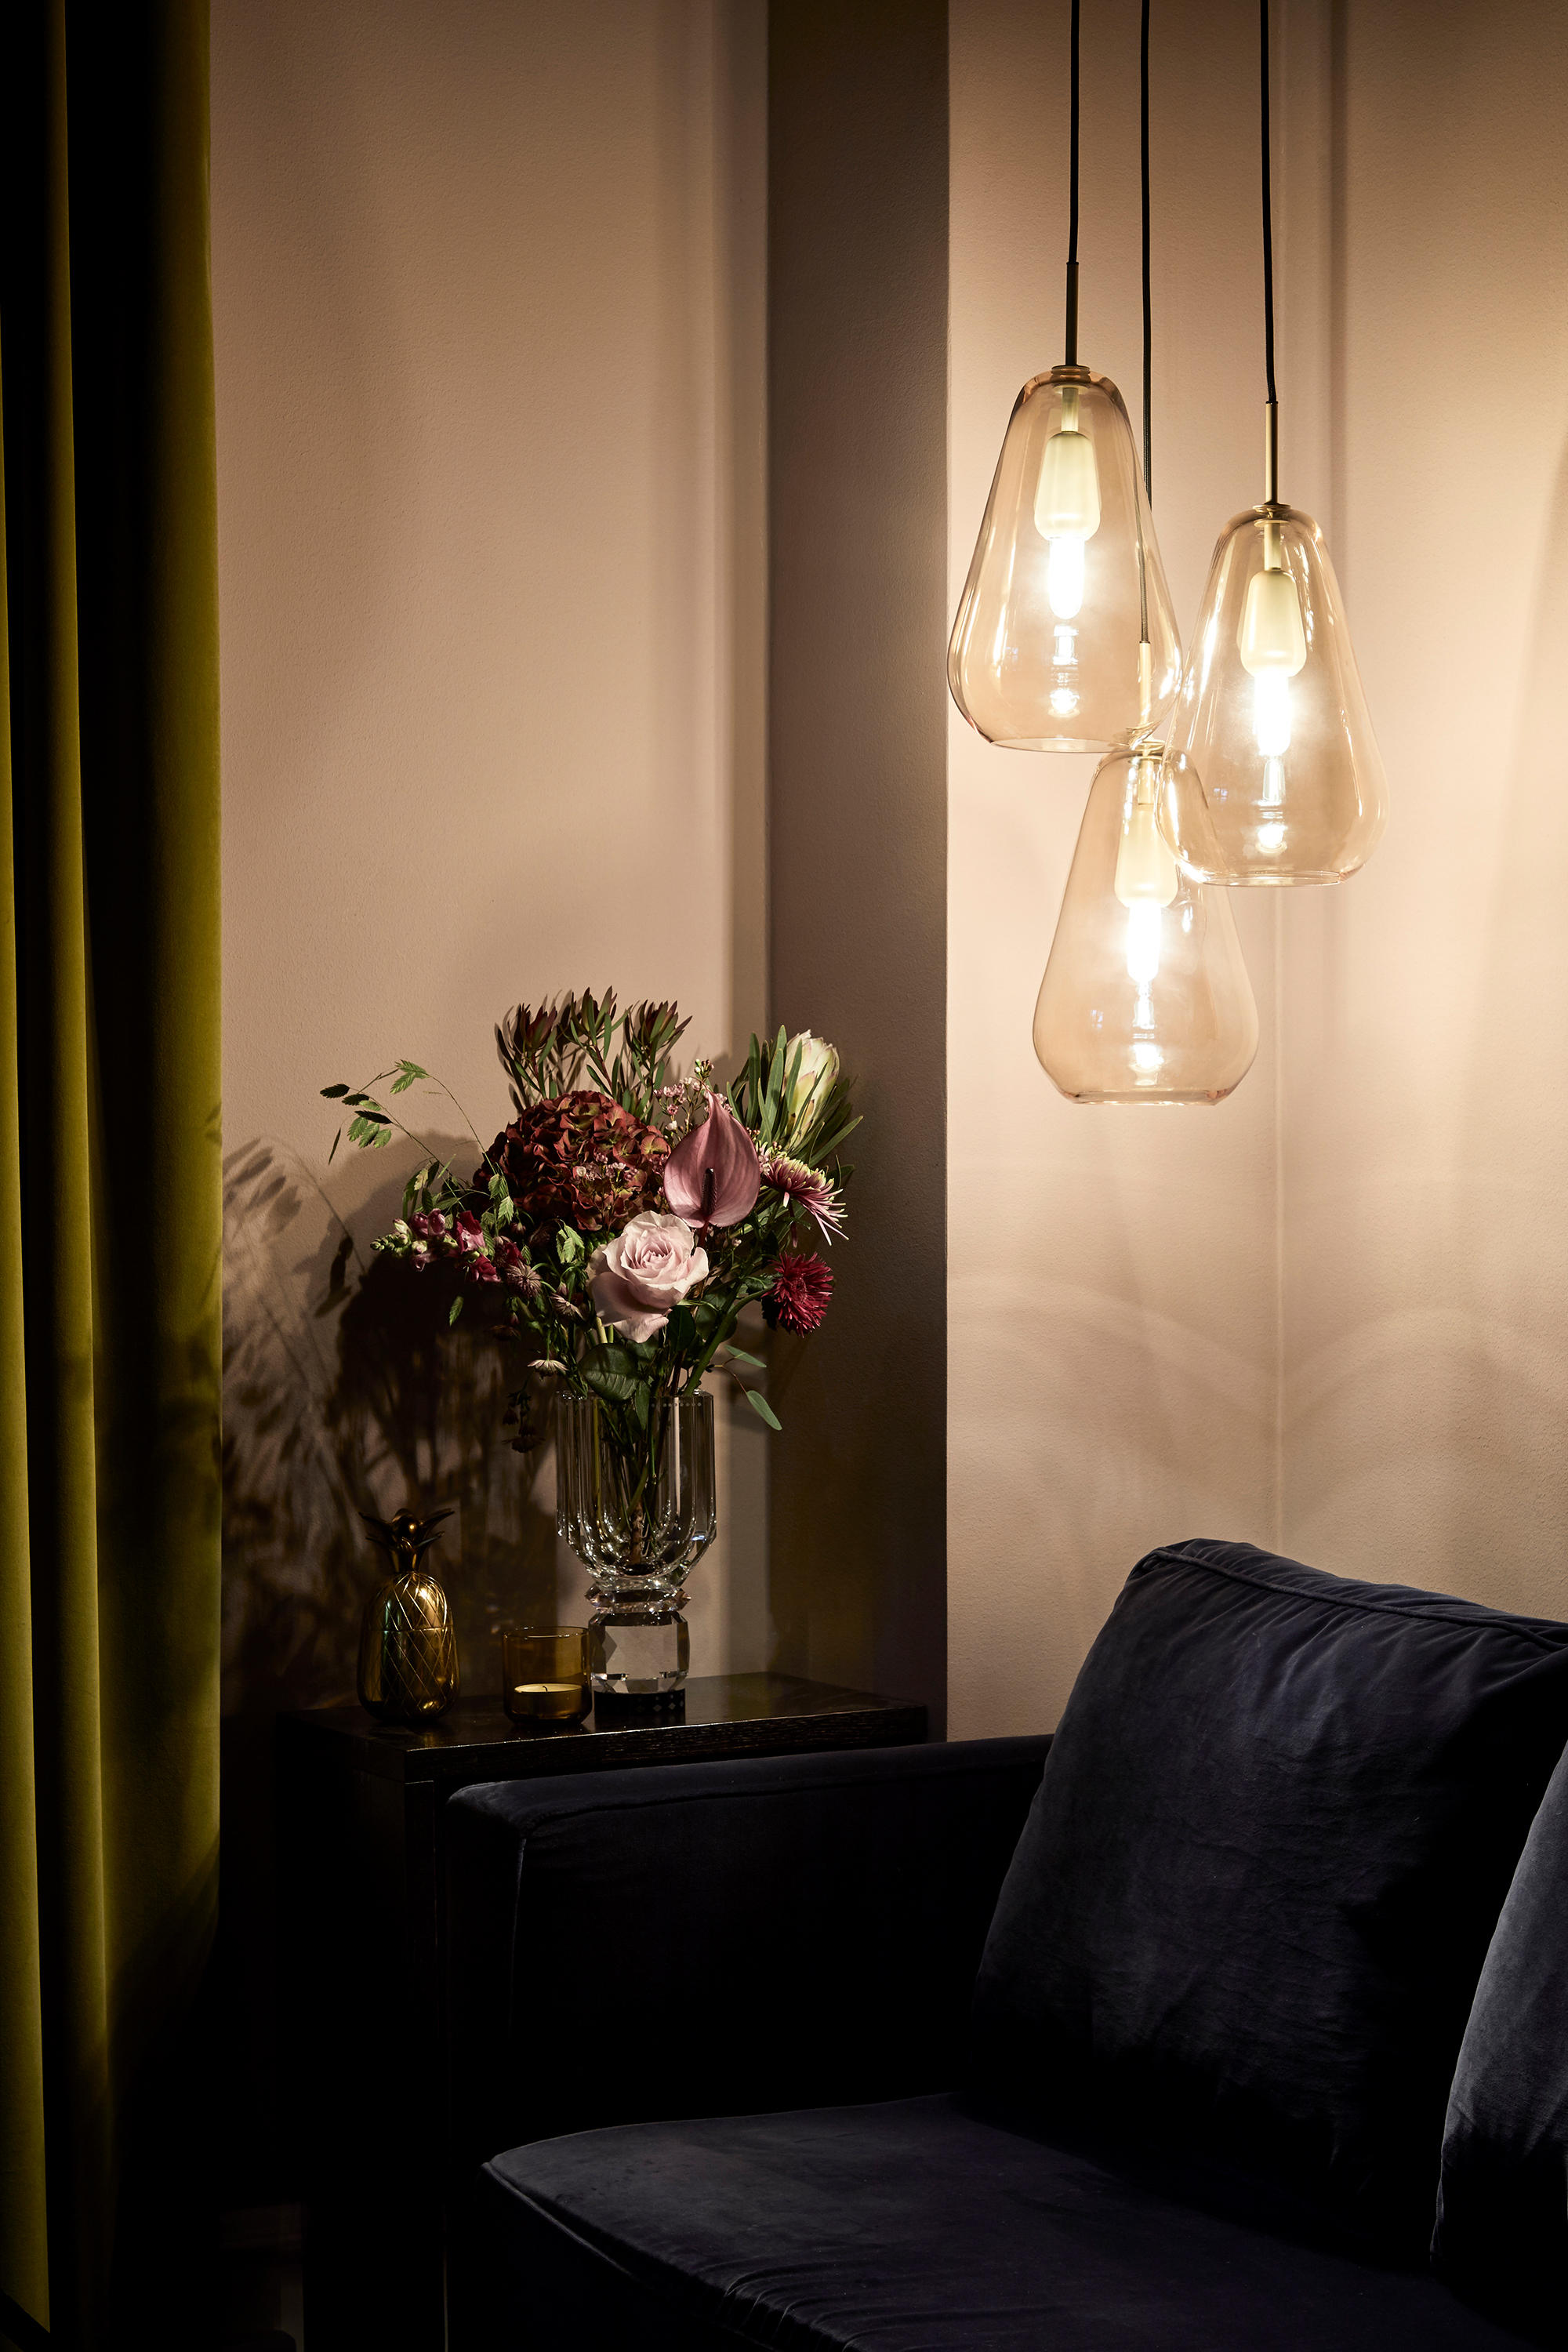 Anoli Lamps by Nuura